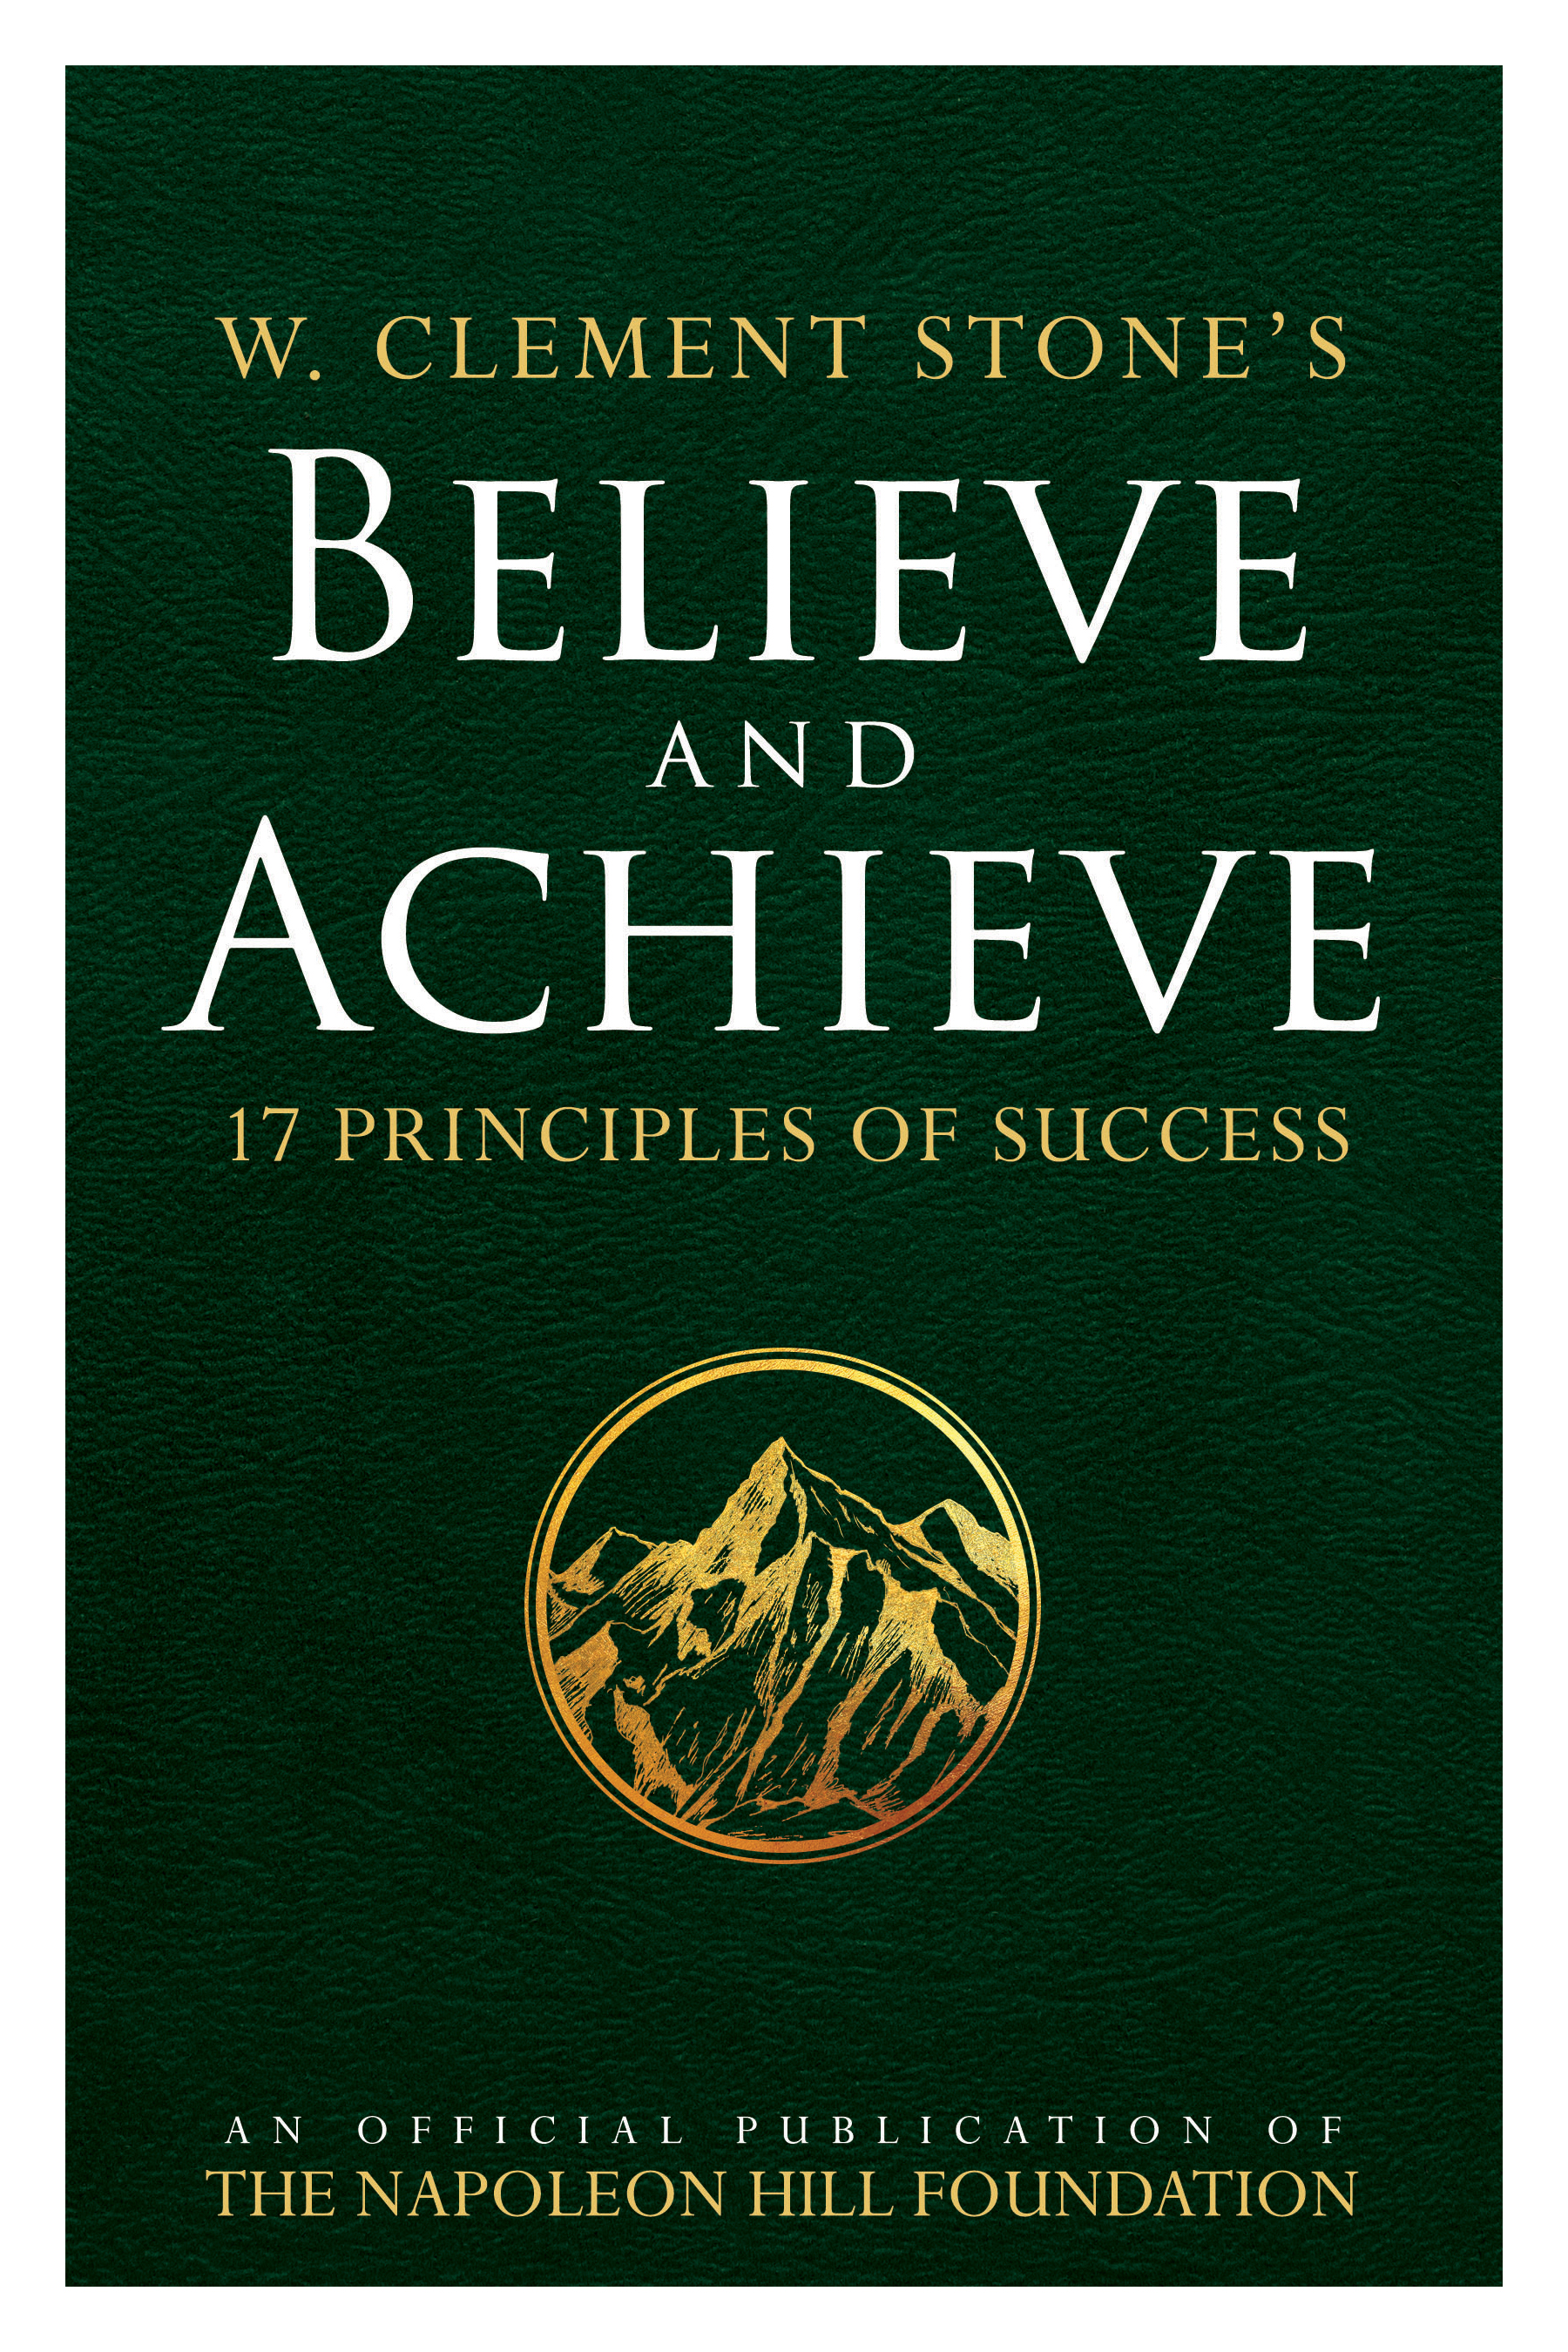 W_Clement_Stone's_Believe_and_Achieve.jpg